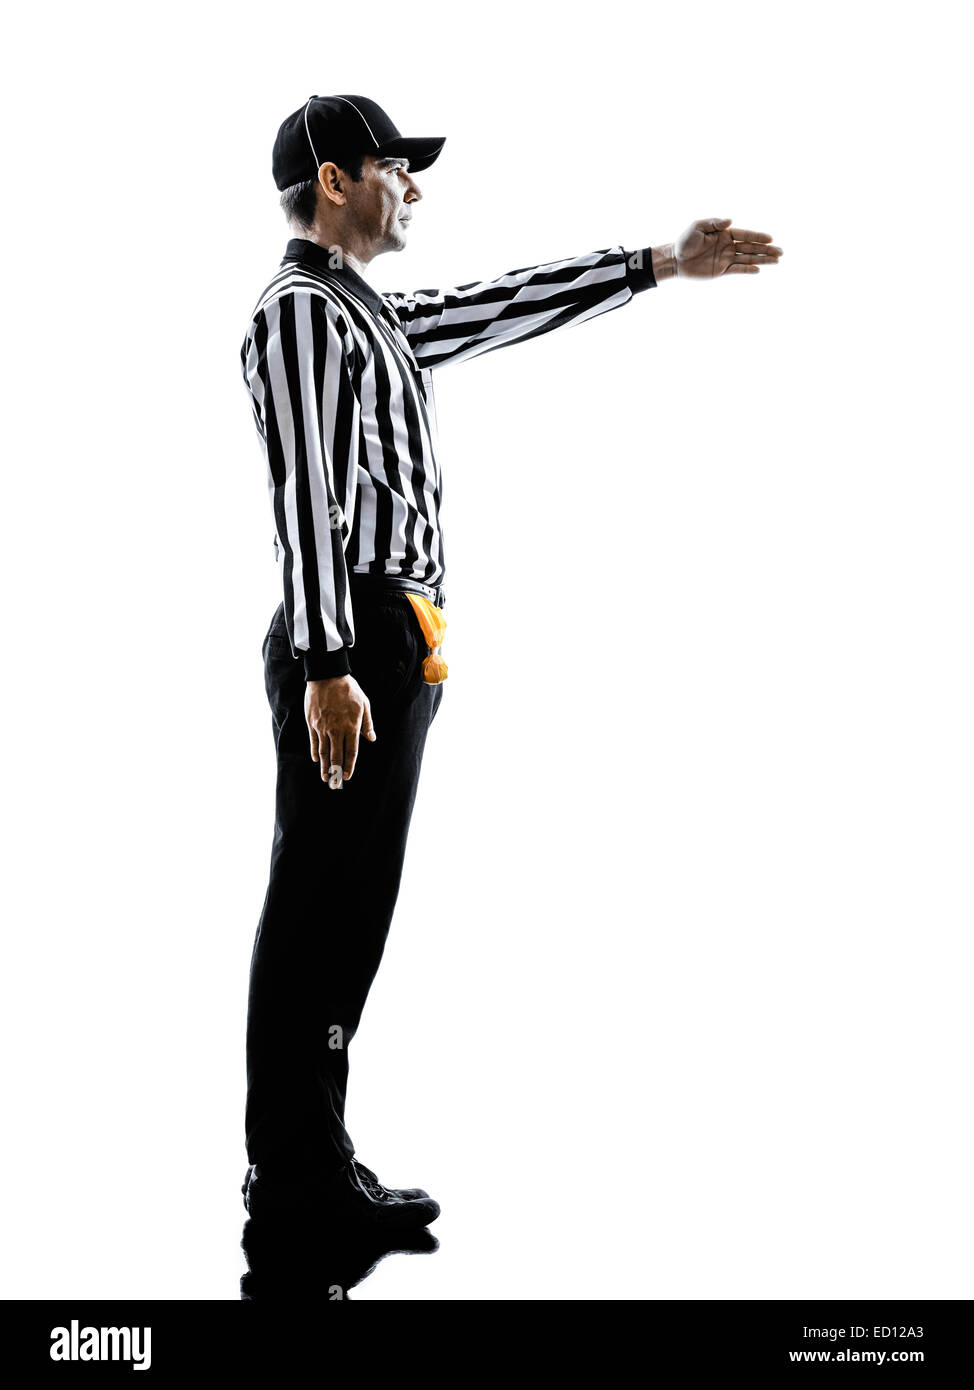 american football referee gestures first down in silhouette on white background - Stock Image